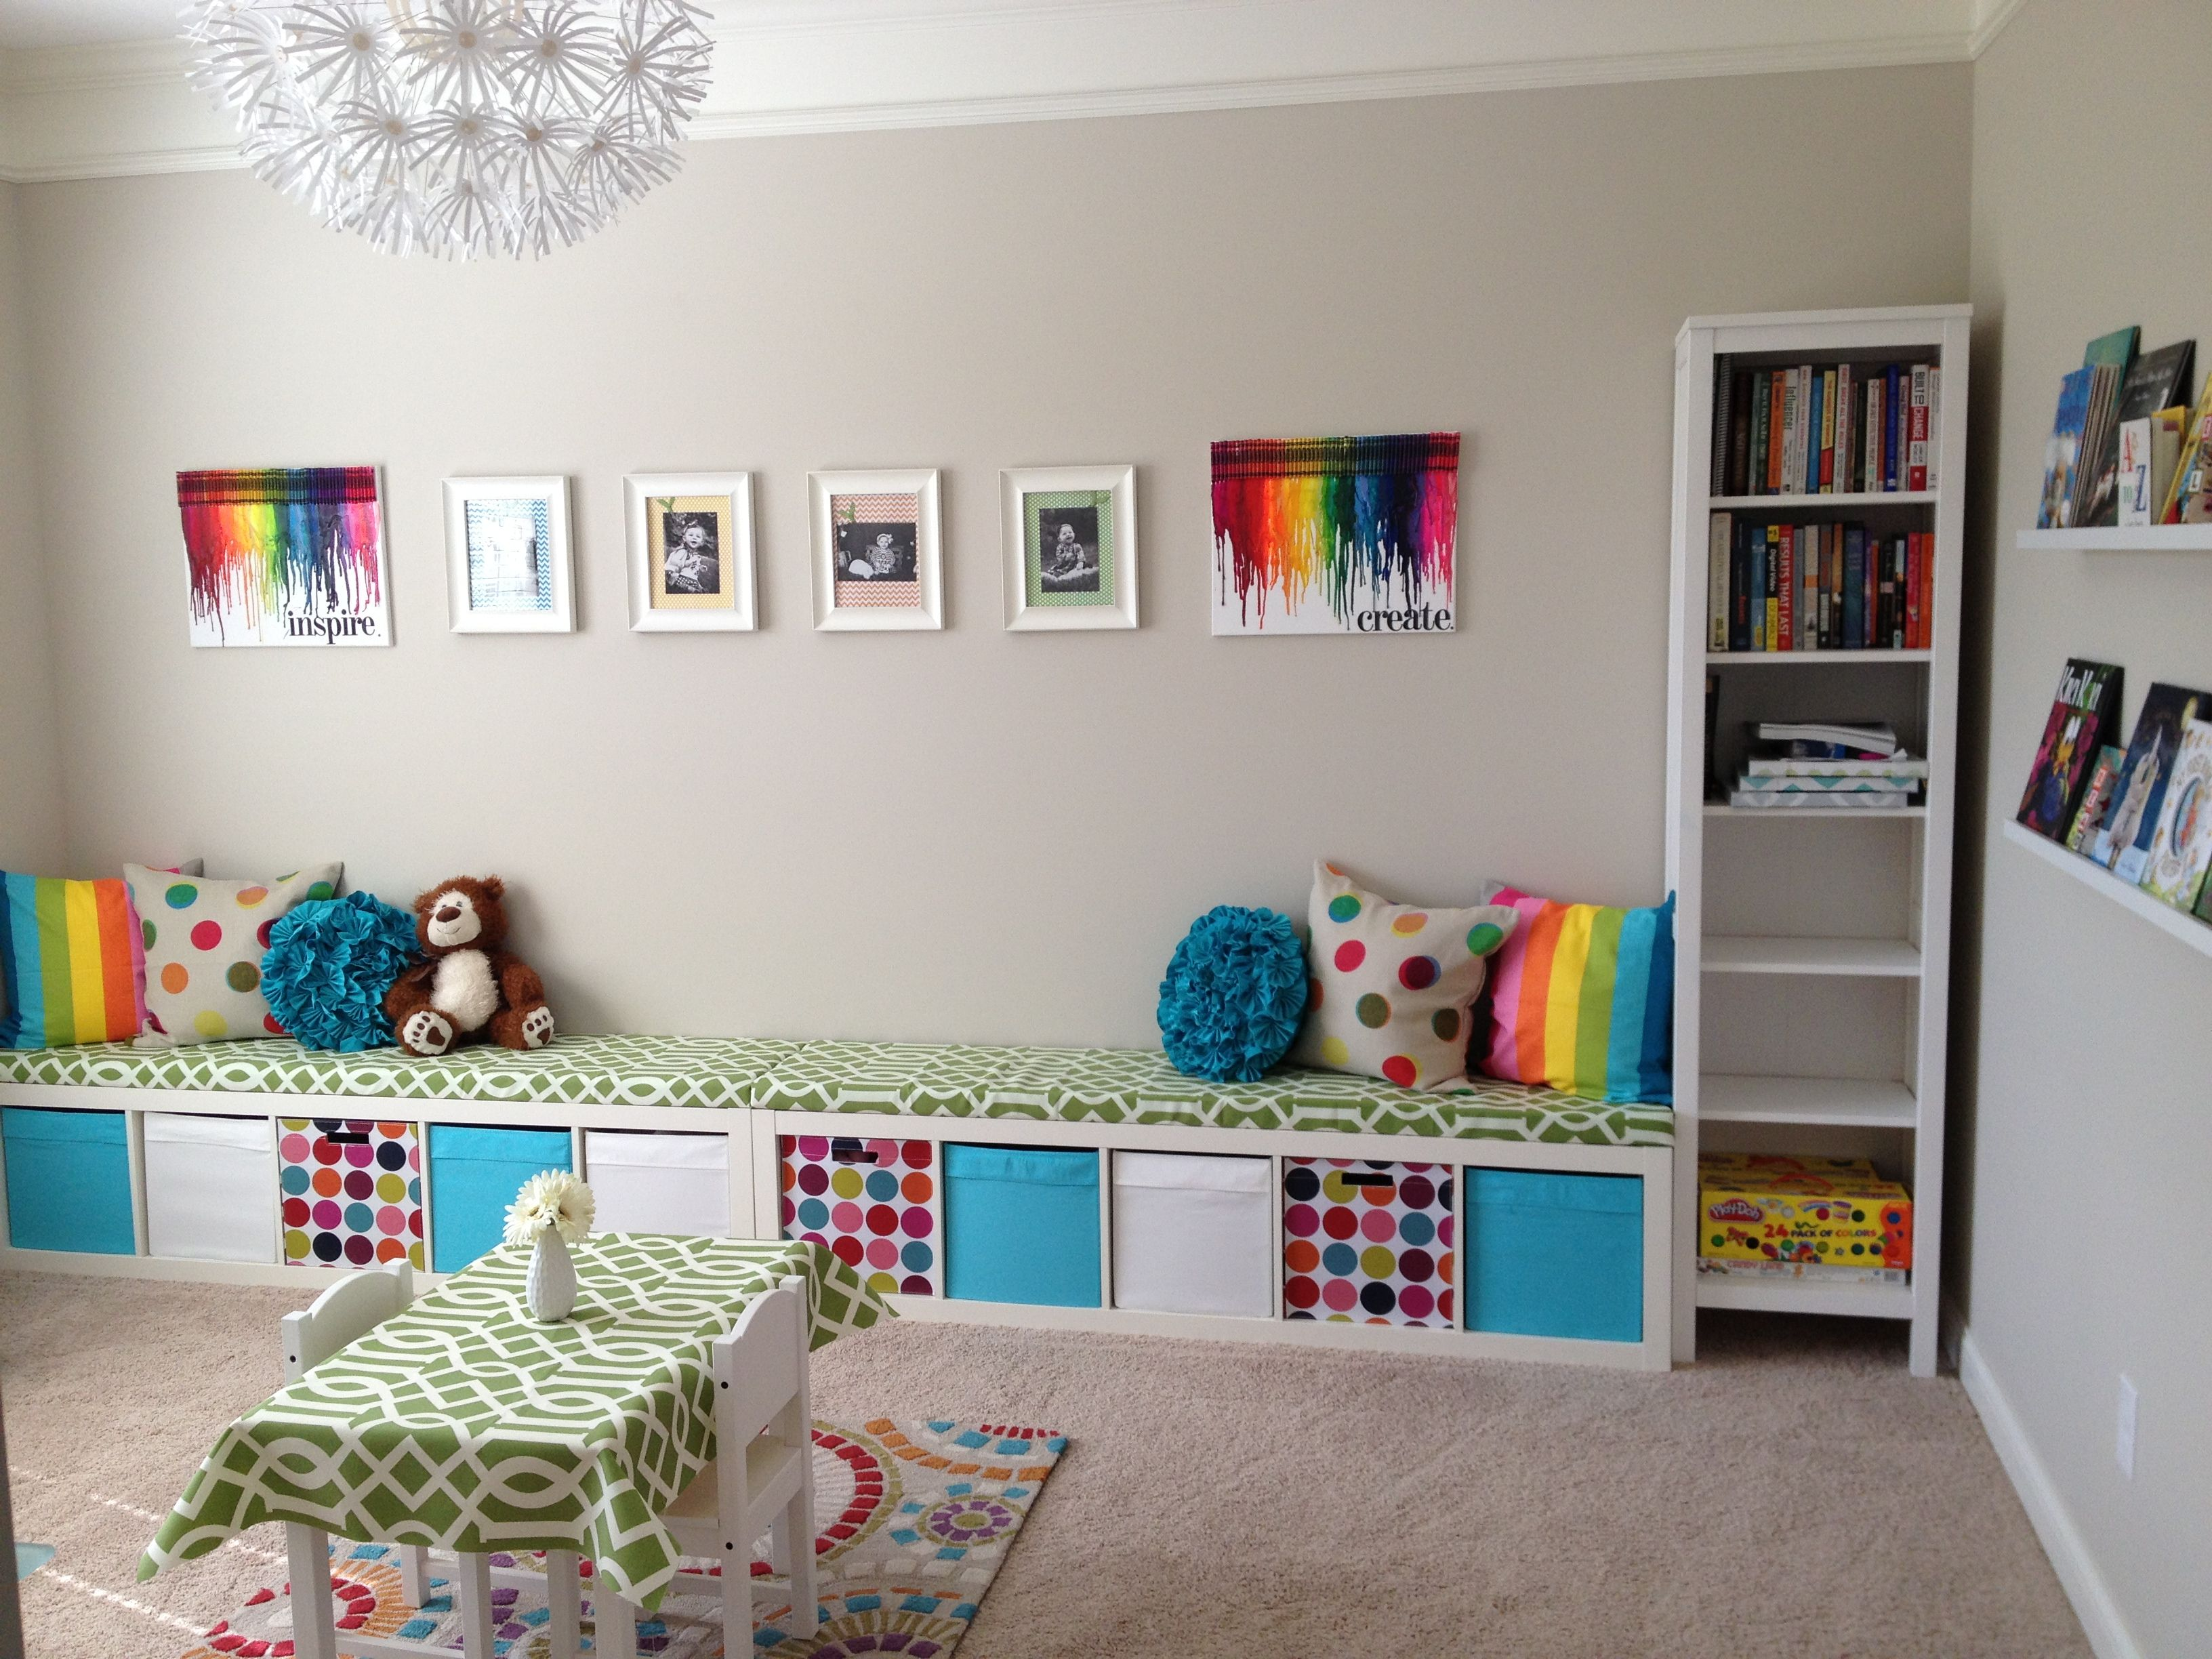 Ikea Expedit Playroom Storage Bench Two Together To Go Down The